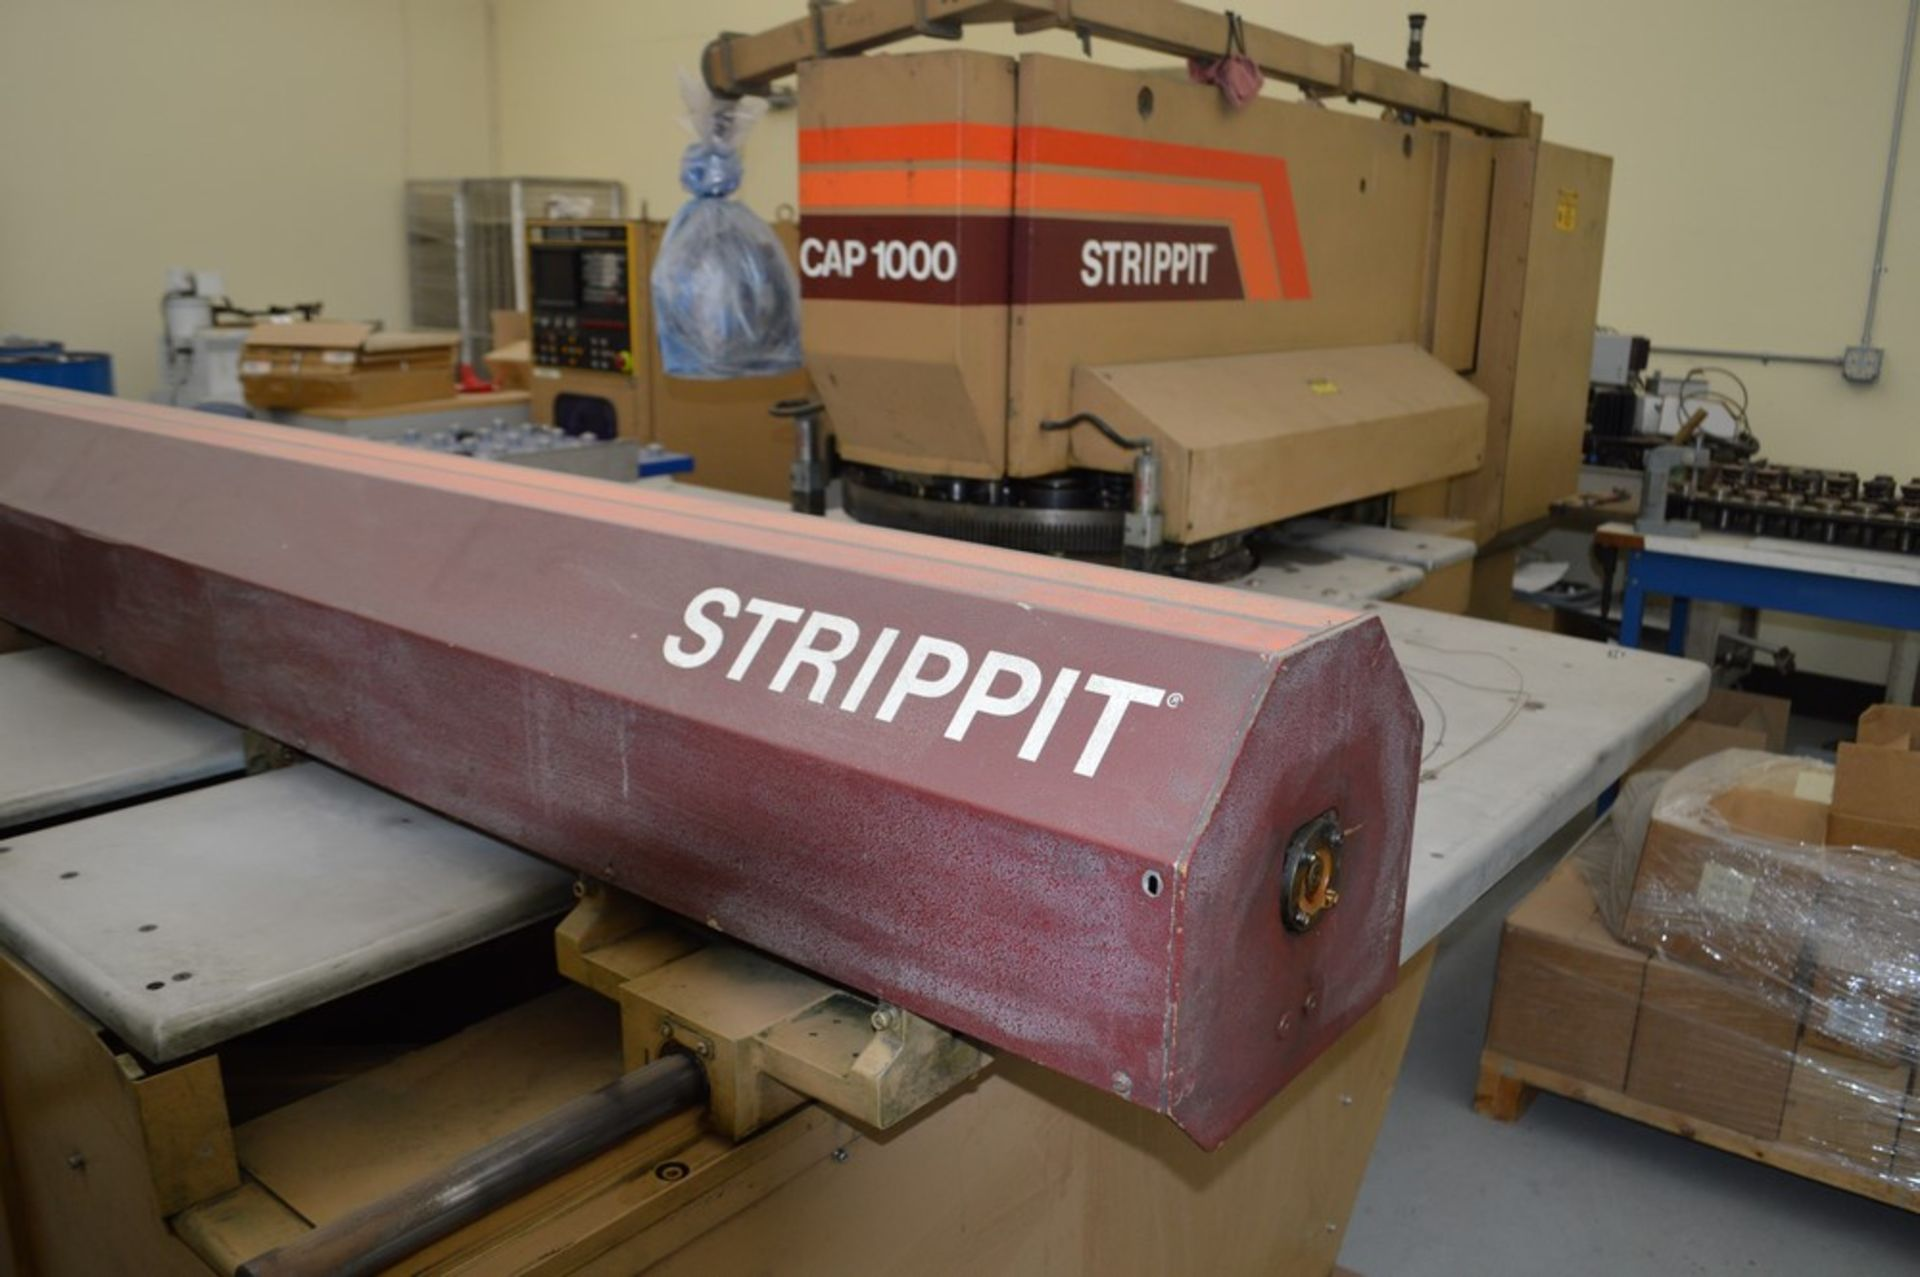 1985 Del Arco Strippit 1000 lbs punch, with auxilliary transfer table, 20 stations, blue 4 leg - Image 8 of 15